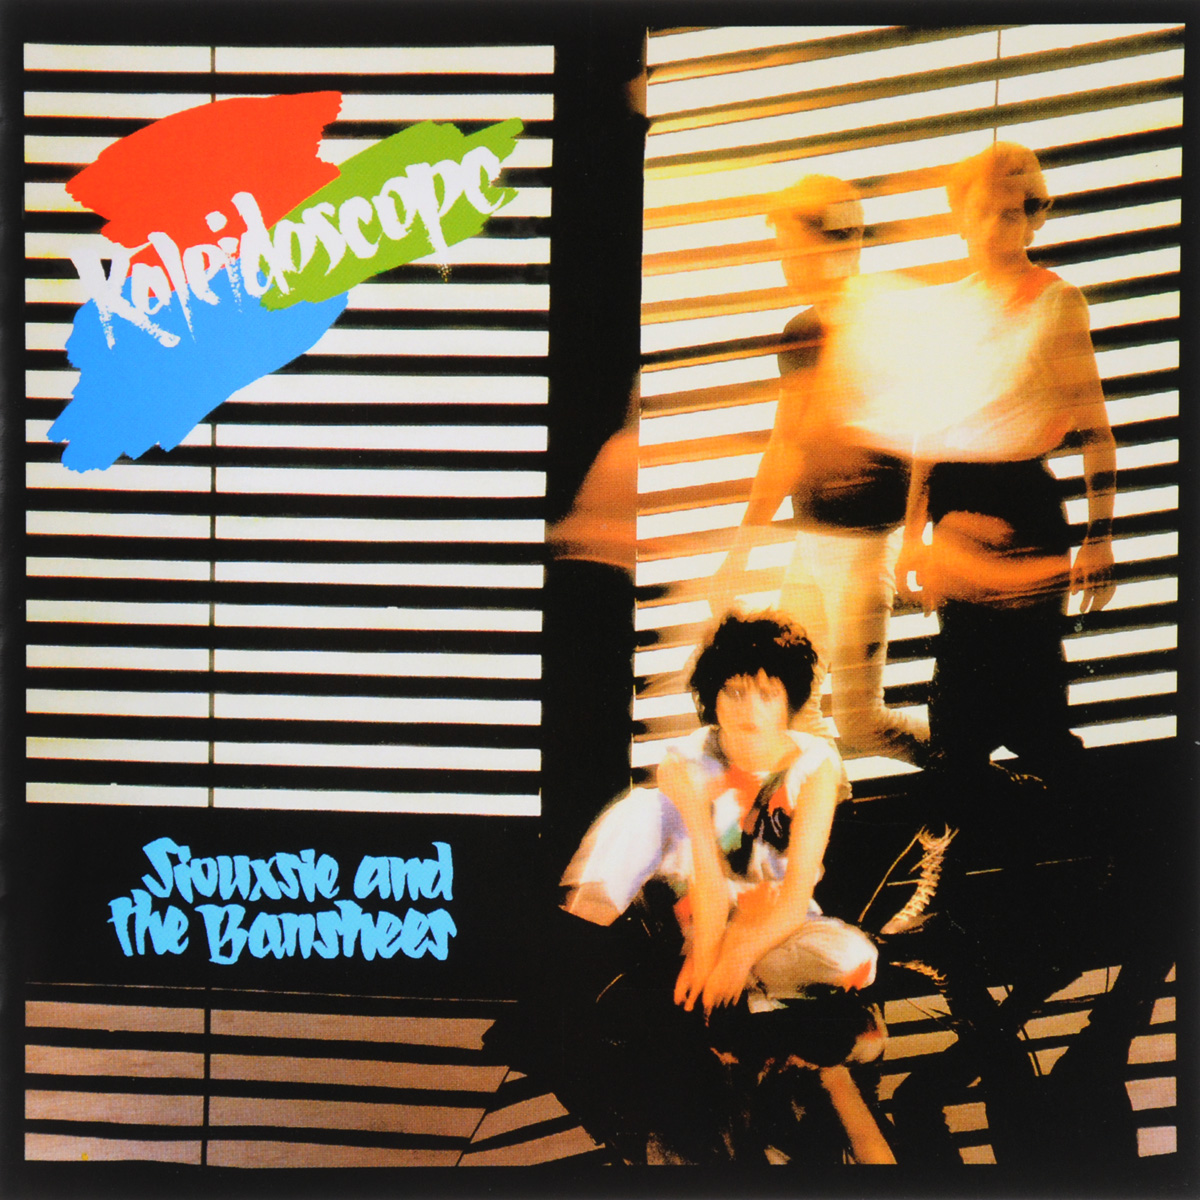 Siouxsie And The Banshees. Kaleidoscope